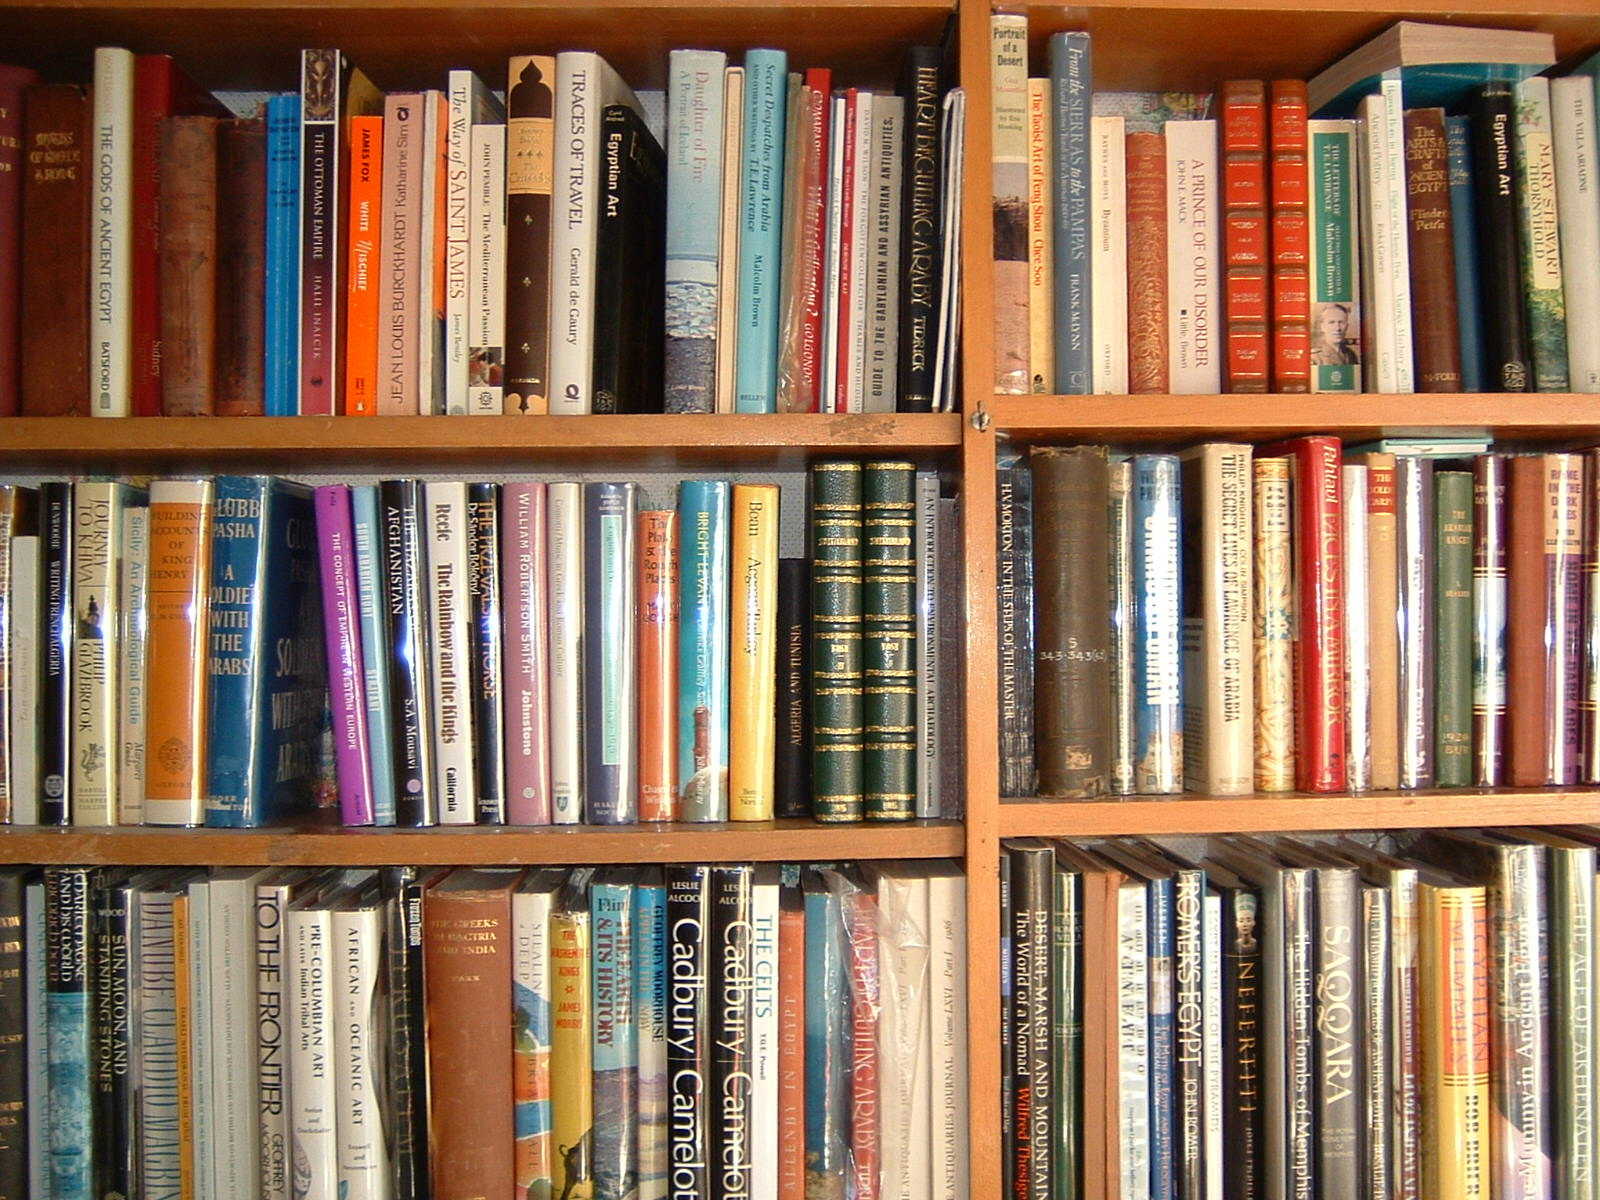 Amazon.com acquires UK online bookseller The Book Depository